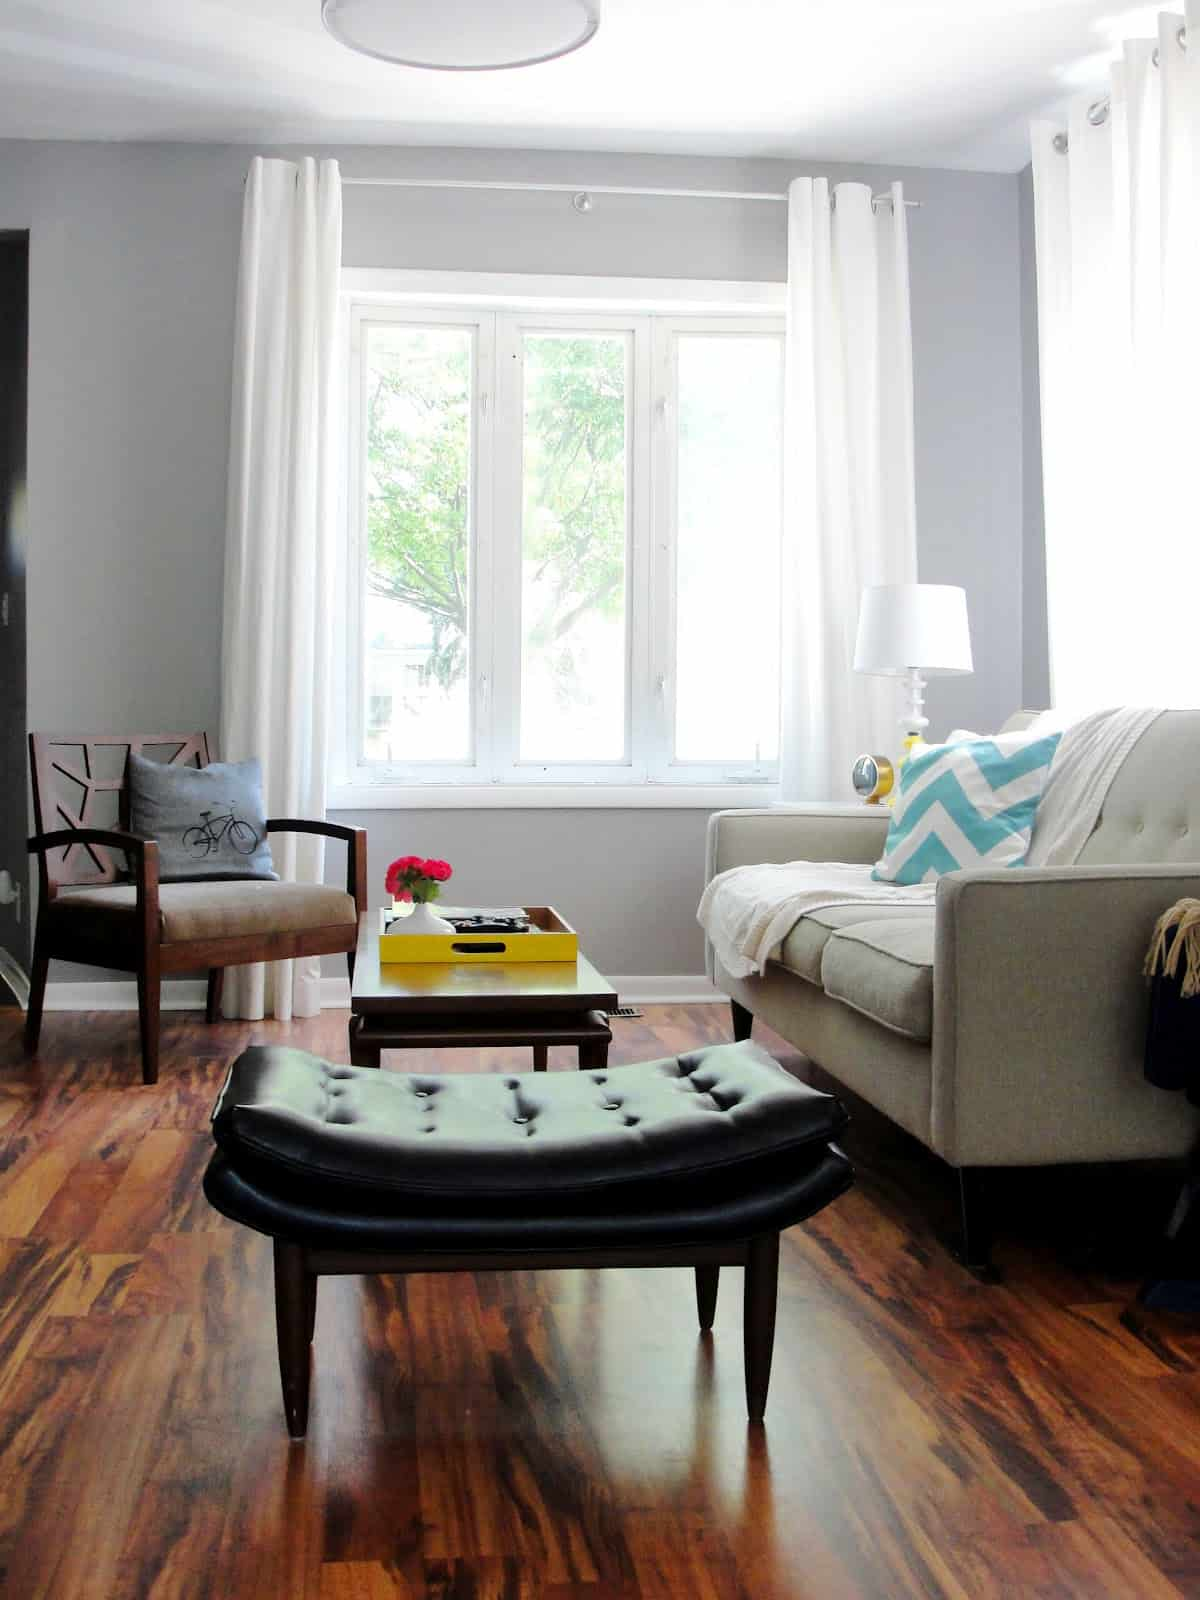 Decorating Mistakes That Make Your Home Feel Smaller